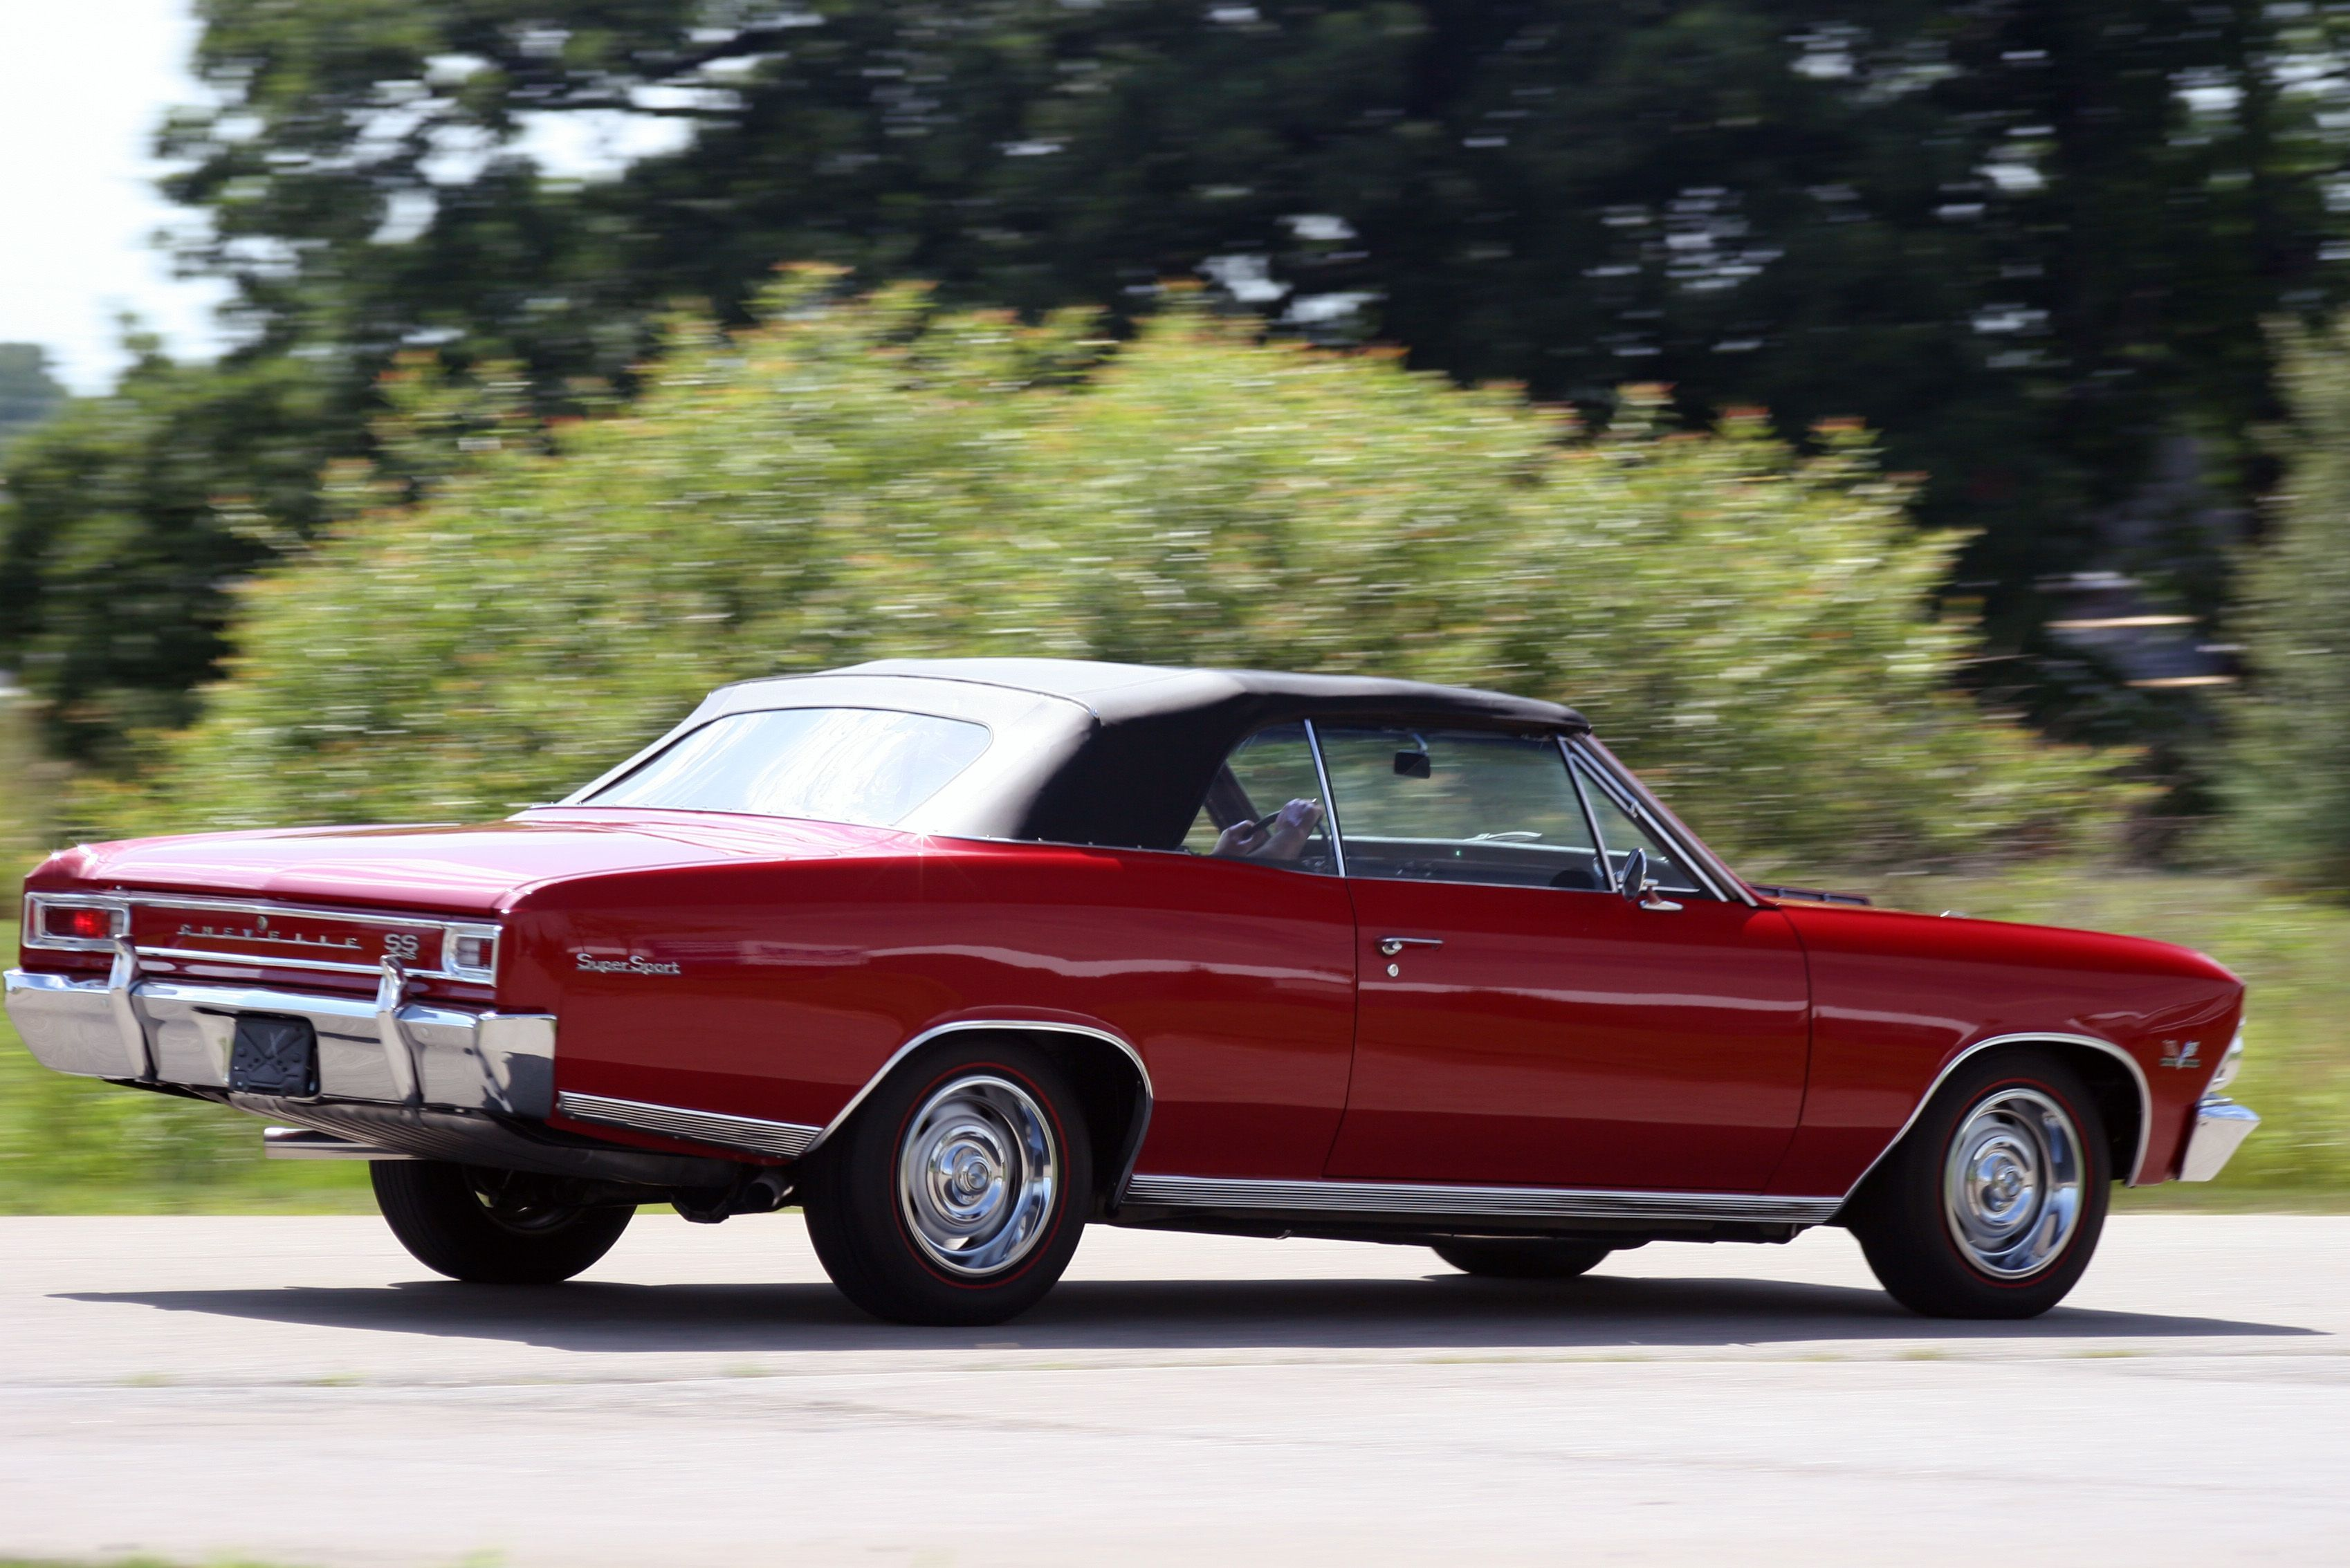 1966 Chevelle SS Convertible Muscle Cars & Co Pinterest